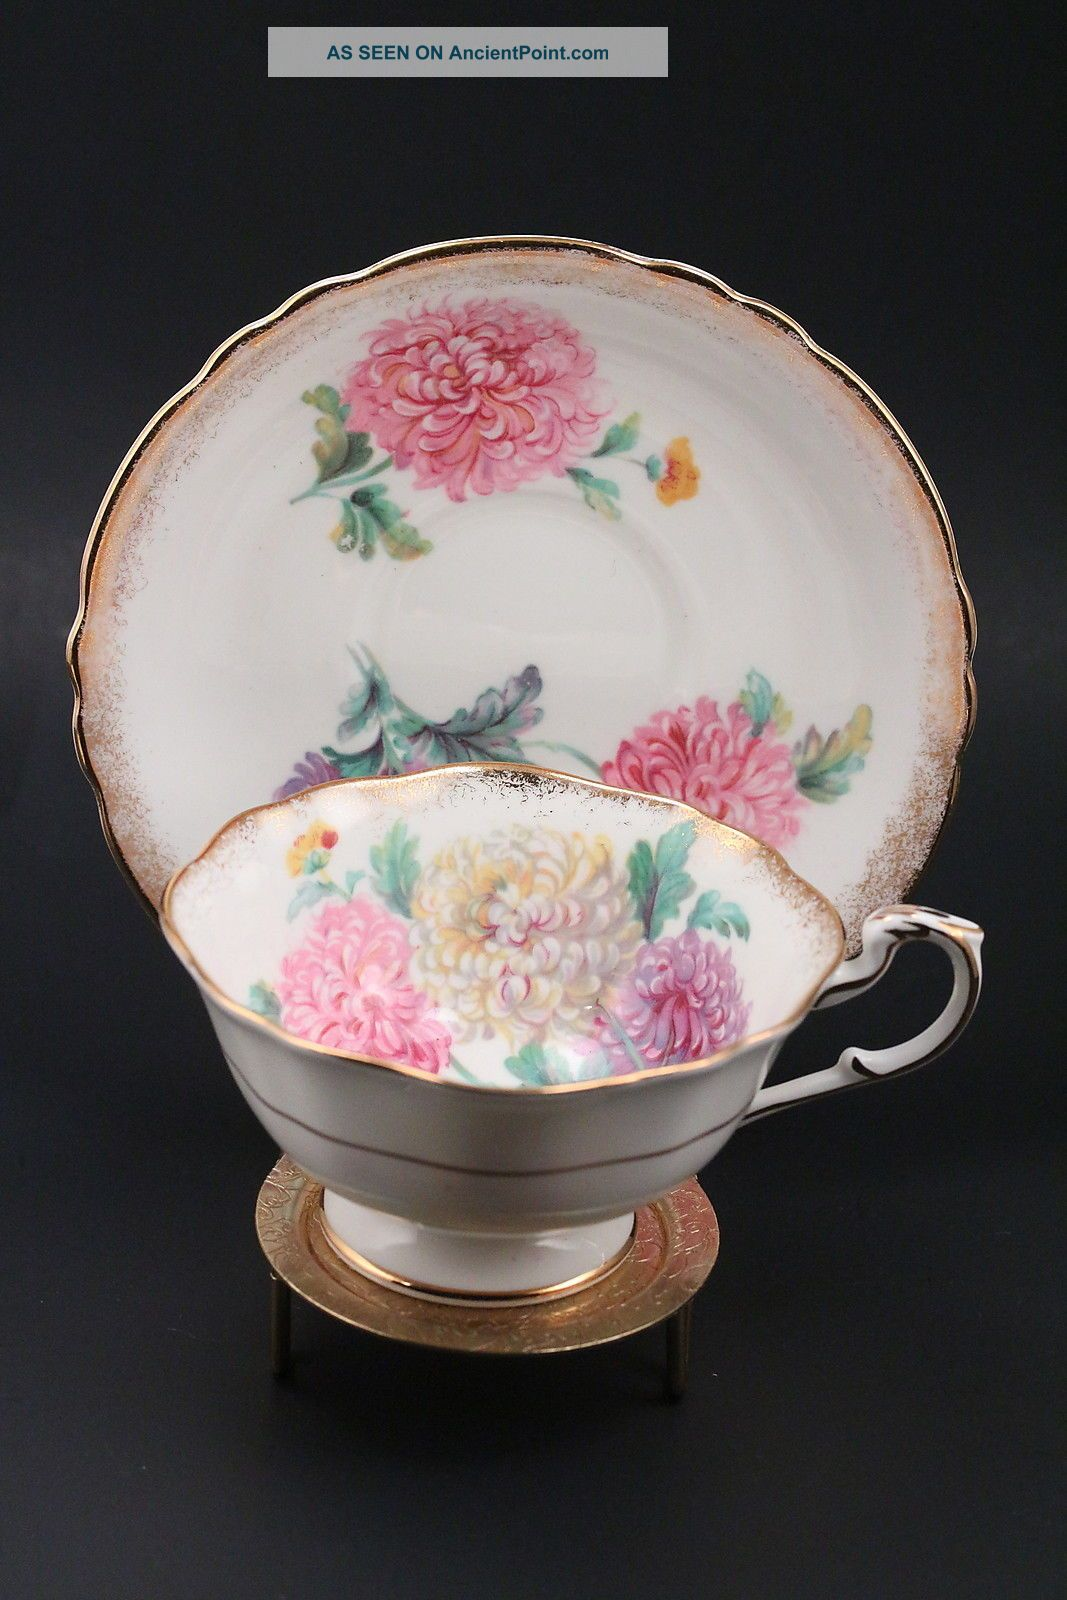 Paragon Floral Gold 22k Tea Cup By Appointment Of Her Majesty The Queen England Cups & Saucers photo